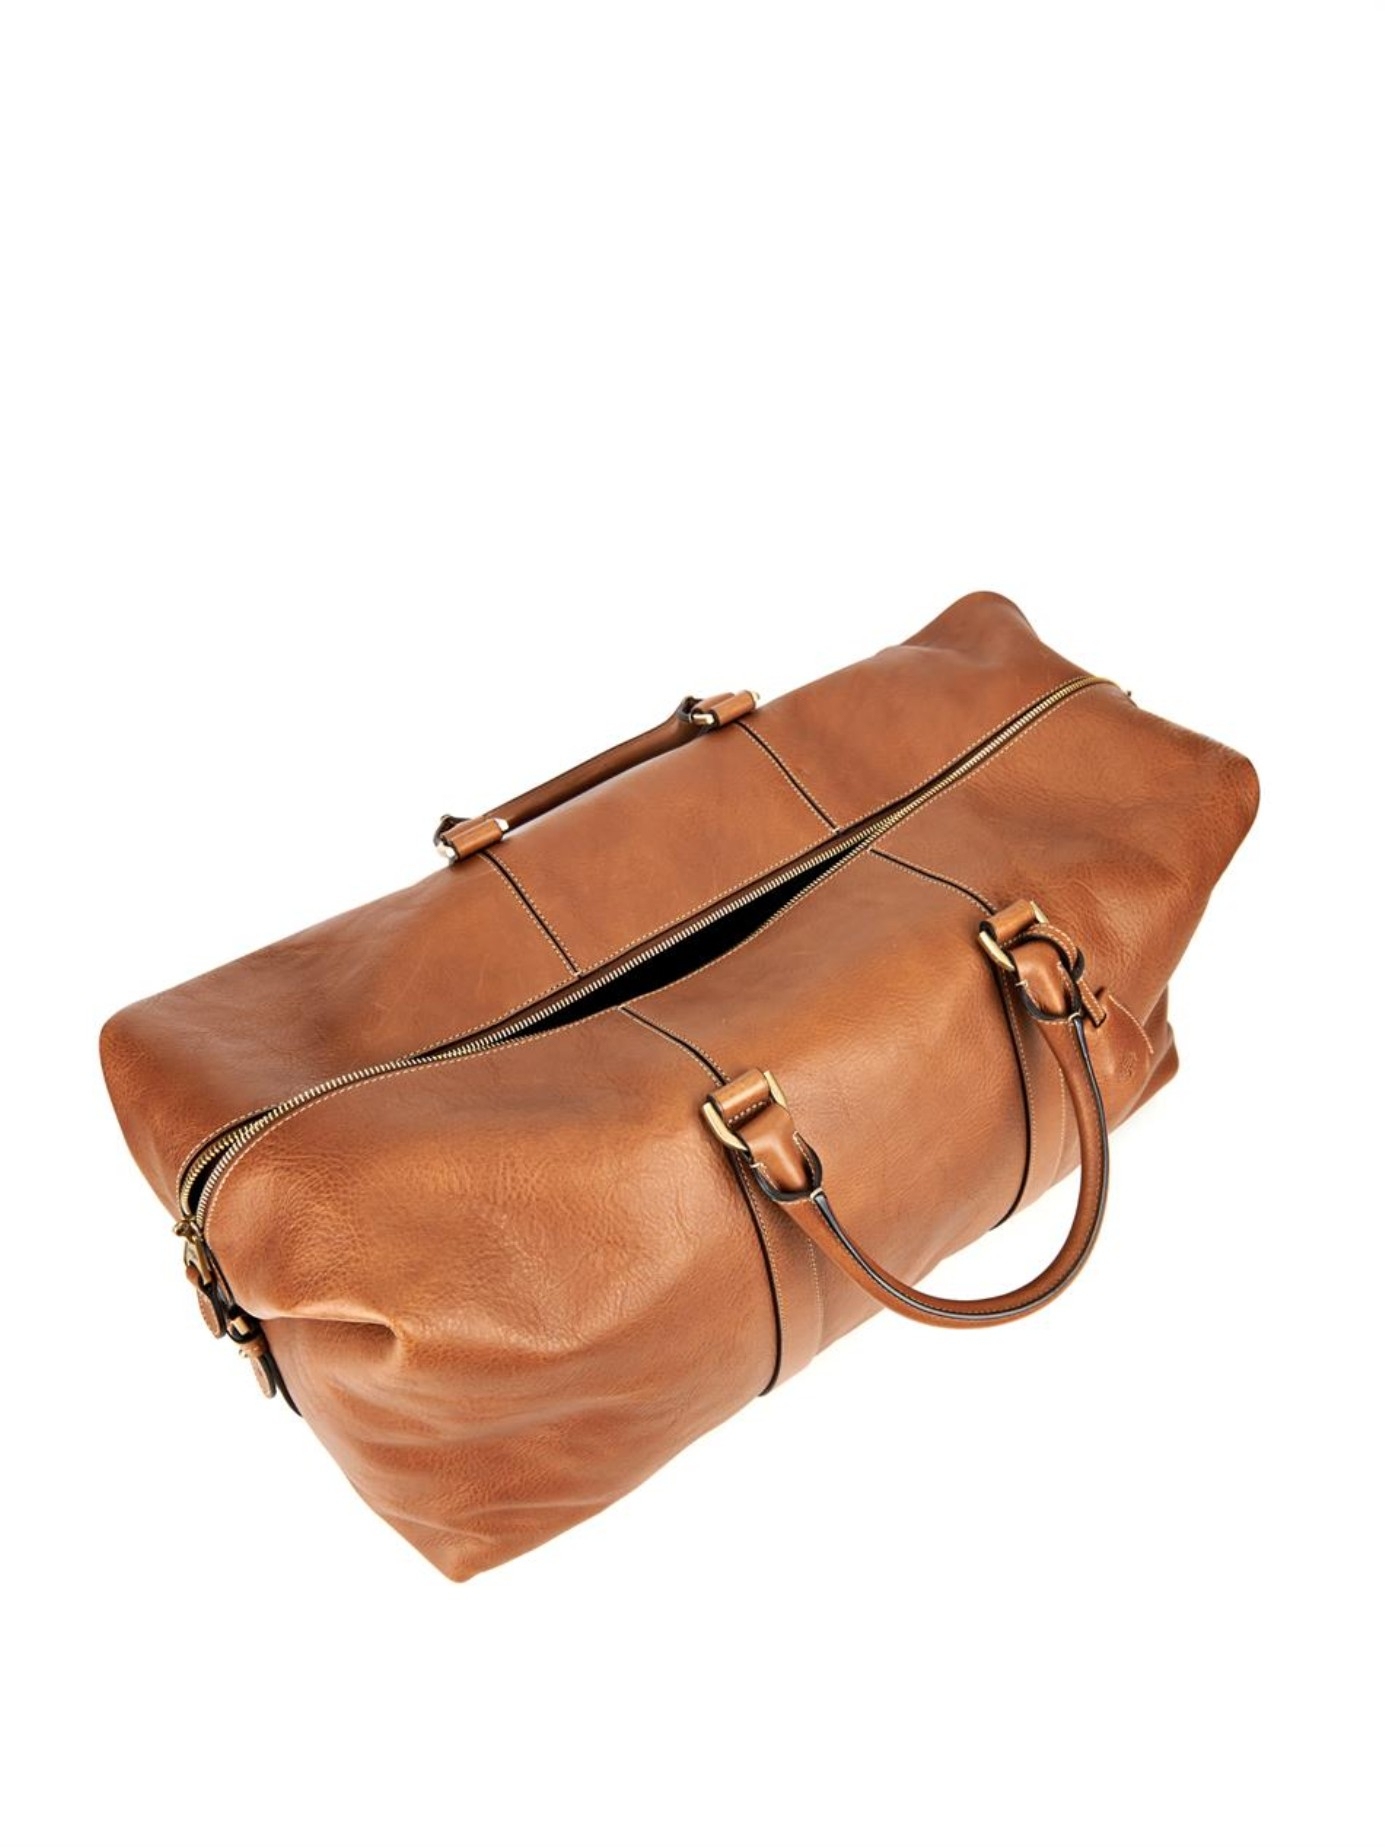 446909c01071 ... uk lyst mulberry clipper leather weekend bag in brown for men f2796  ab9c5